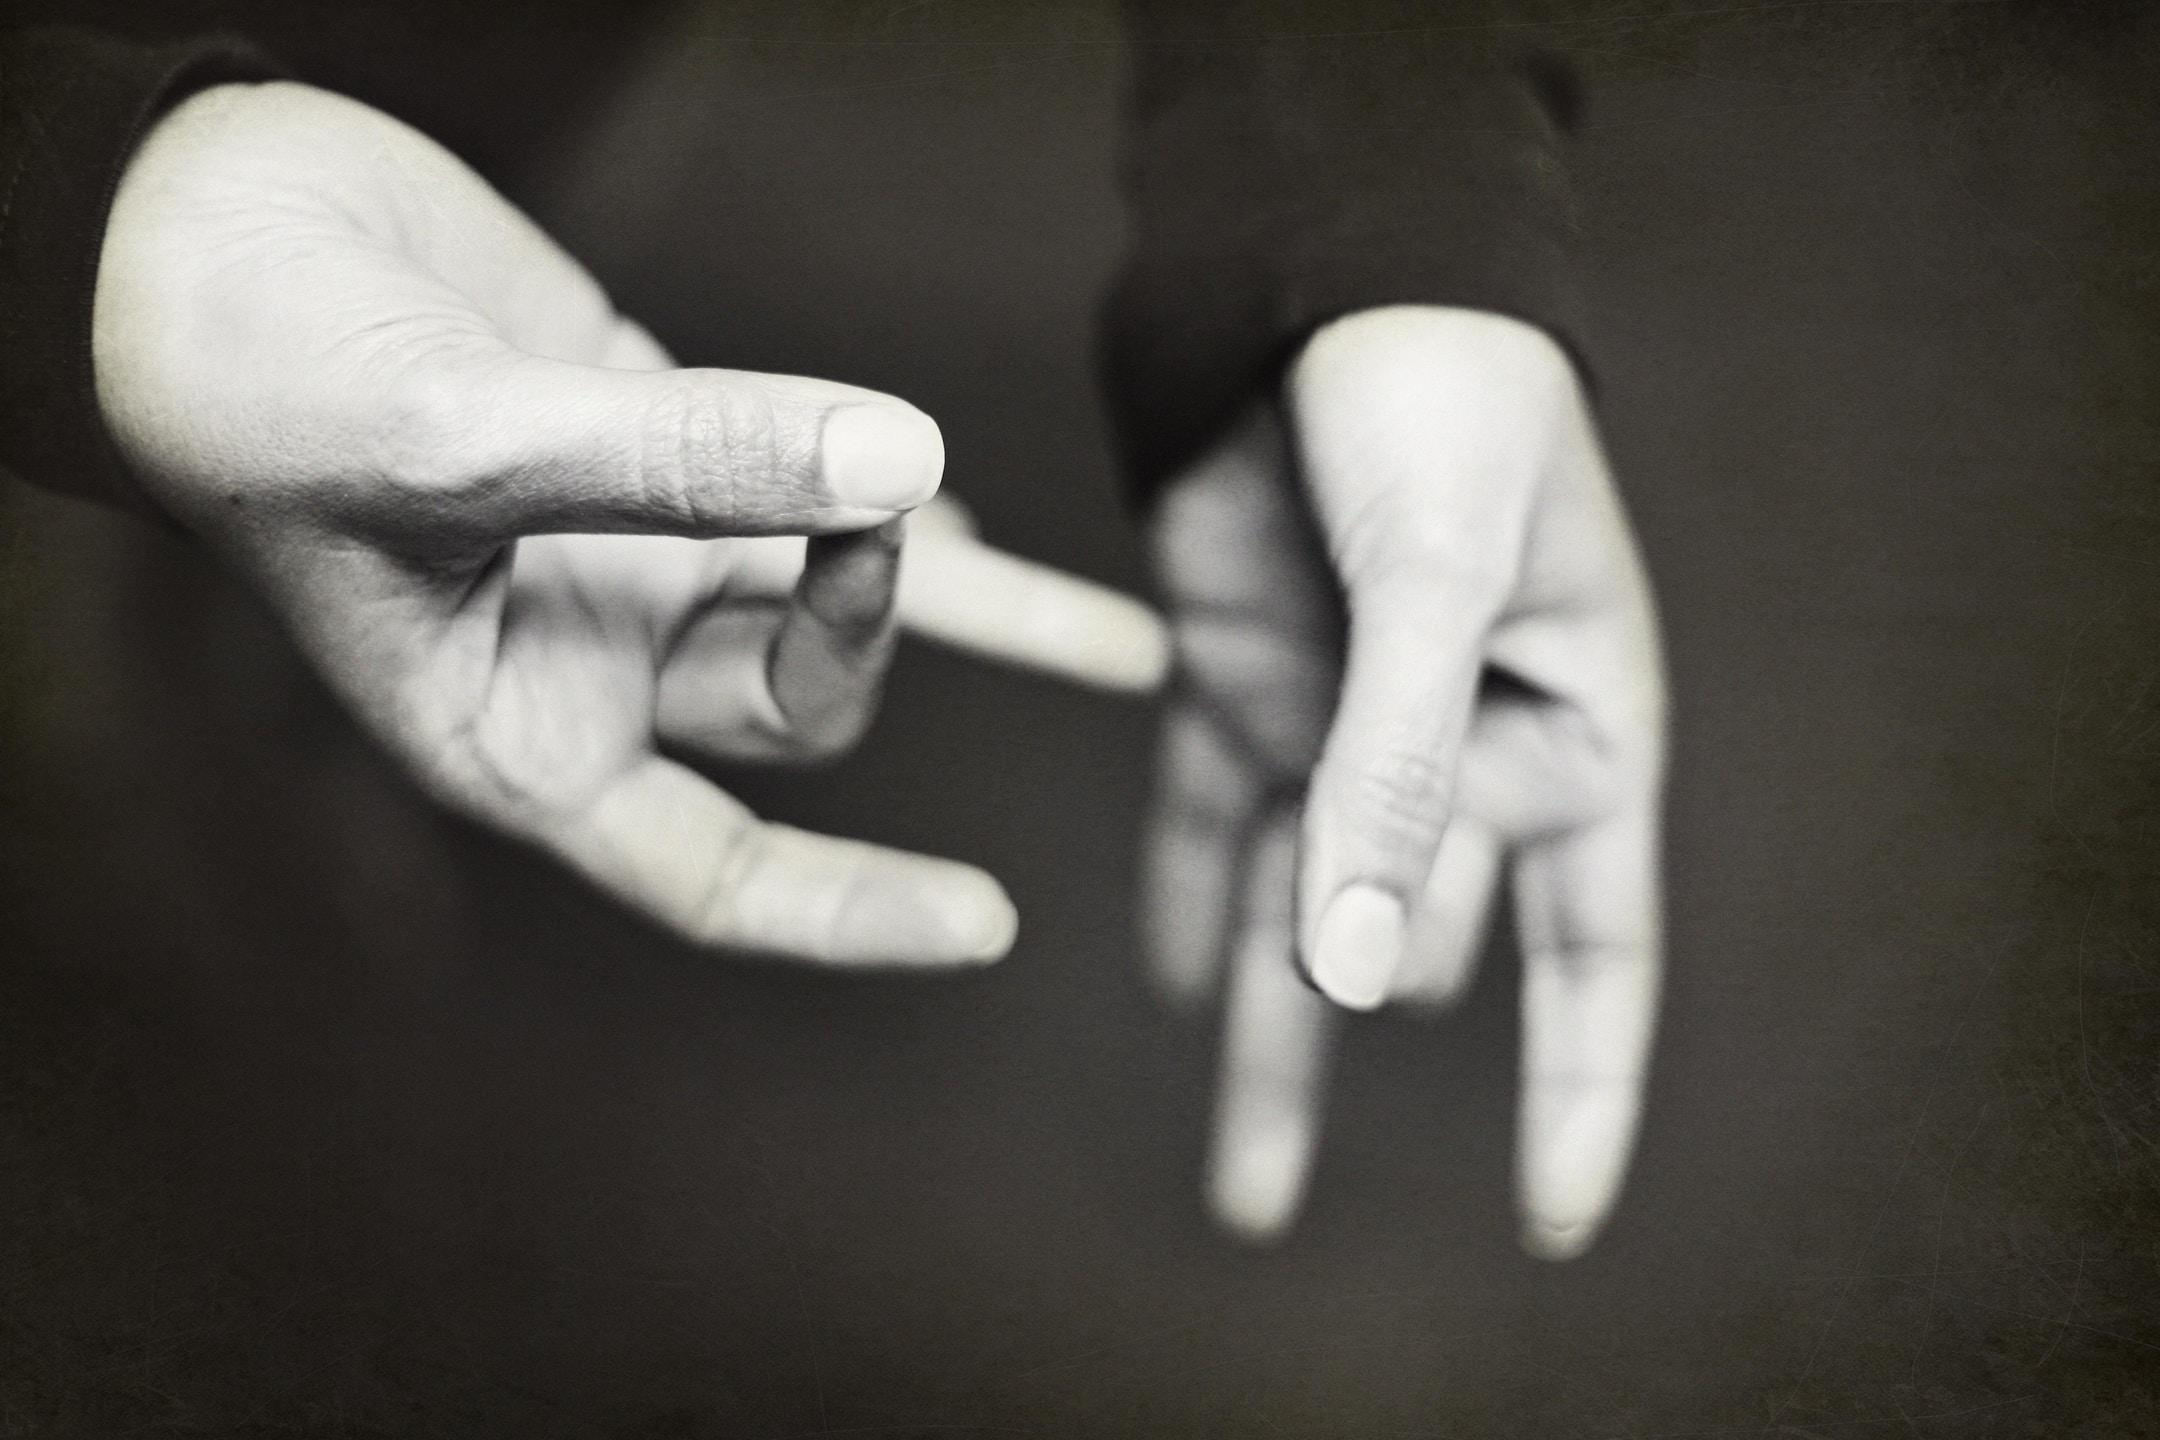 a pair of hands doing american sign language